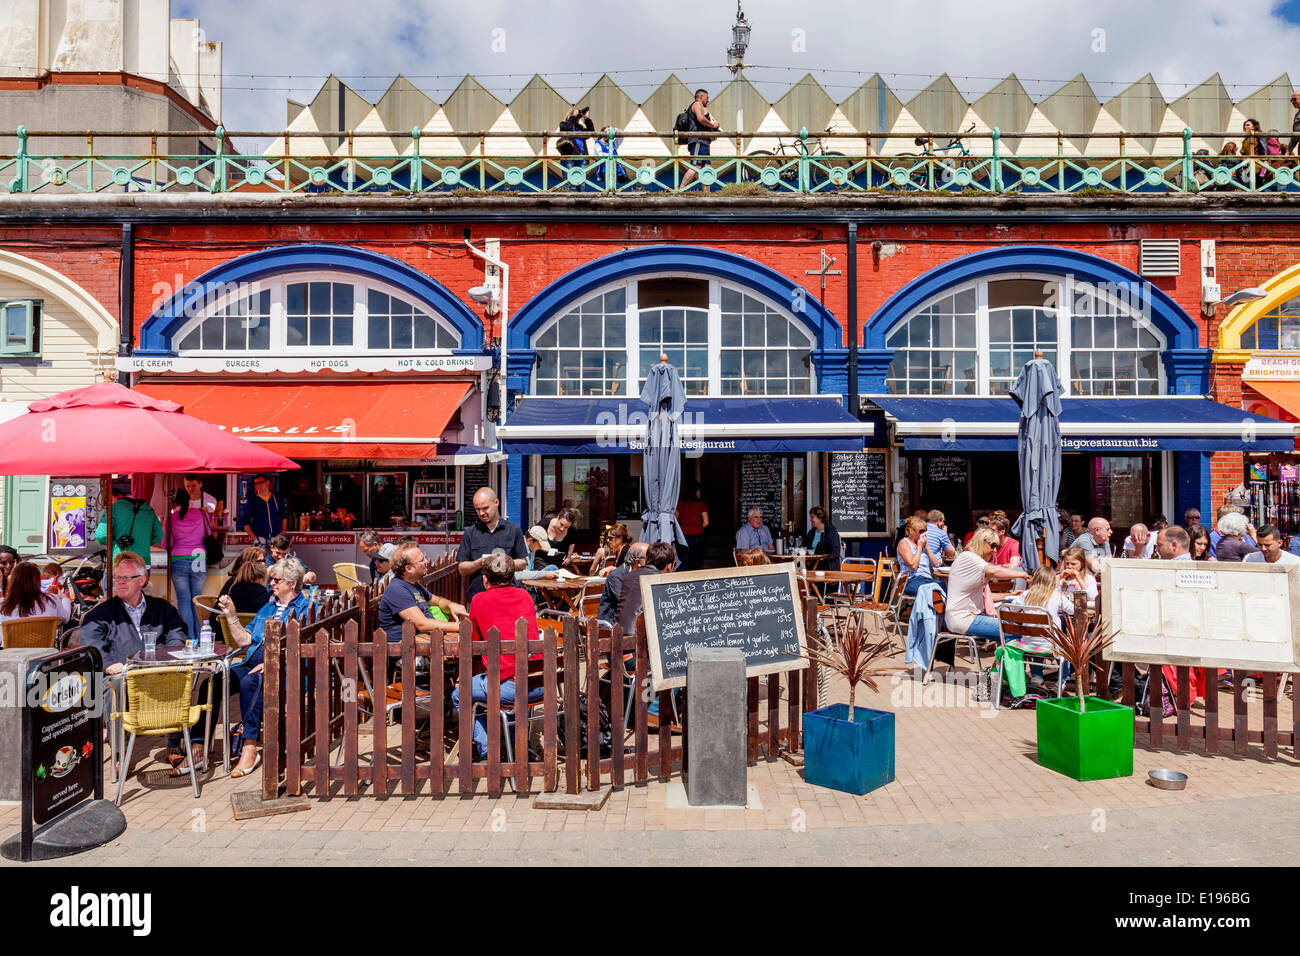 Cafe/Restaurant, Brighton Seafront, Sussex, England Stock Photo